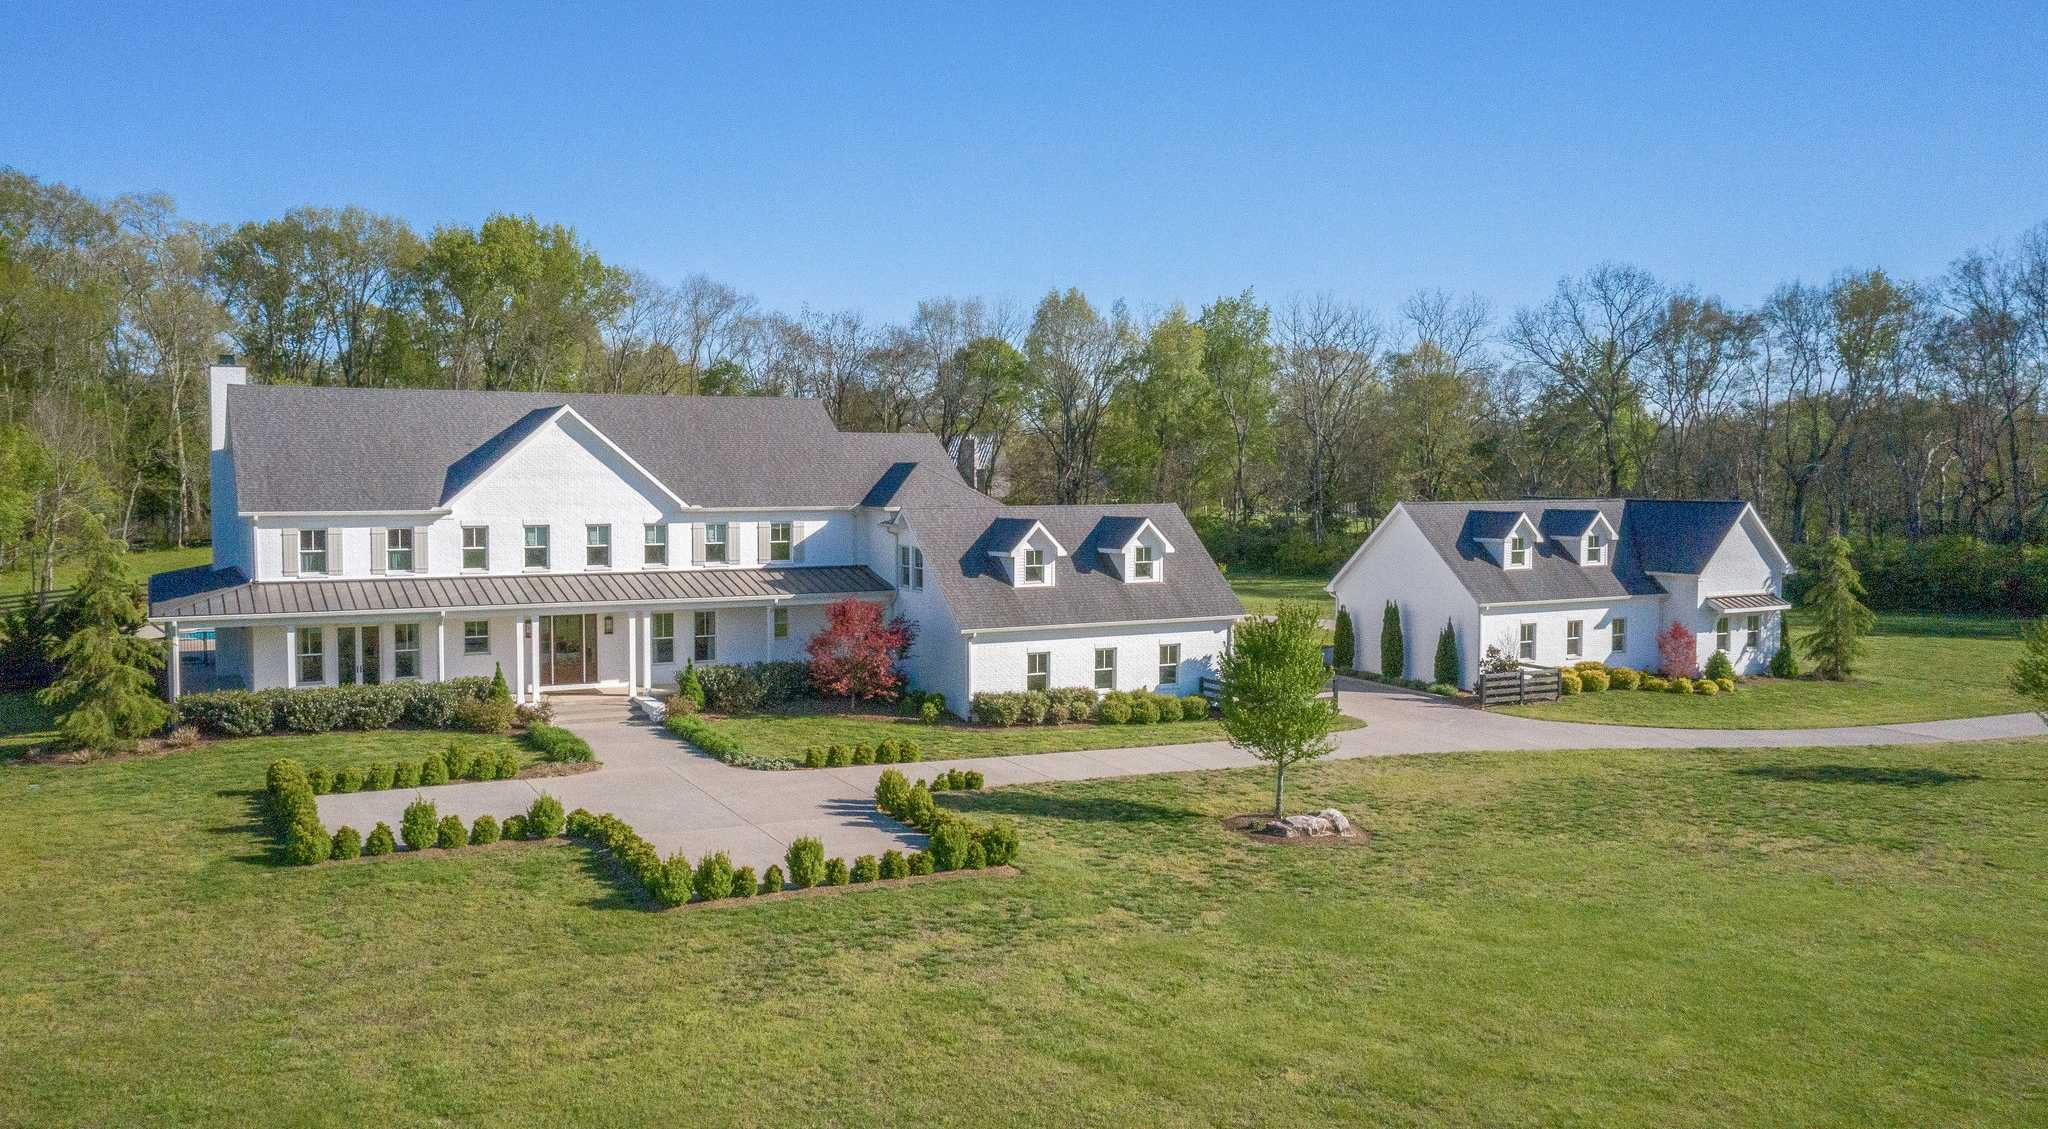 $5,350,000 - 5Br/7Ba -  for Sale in Two Rivers, Franklin